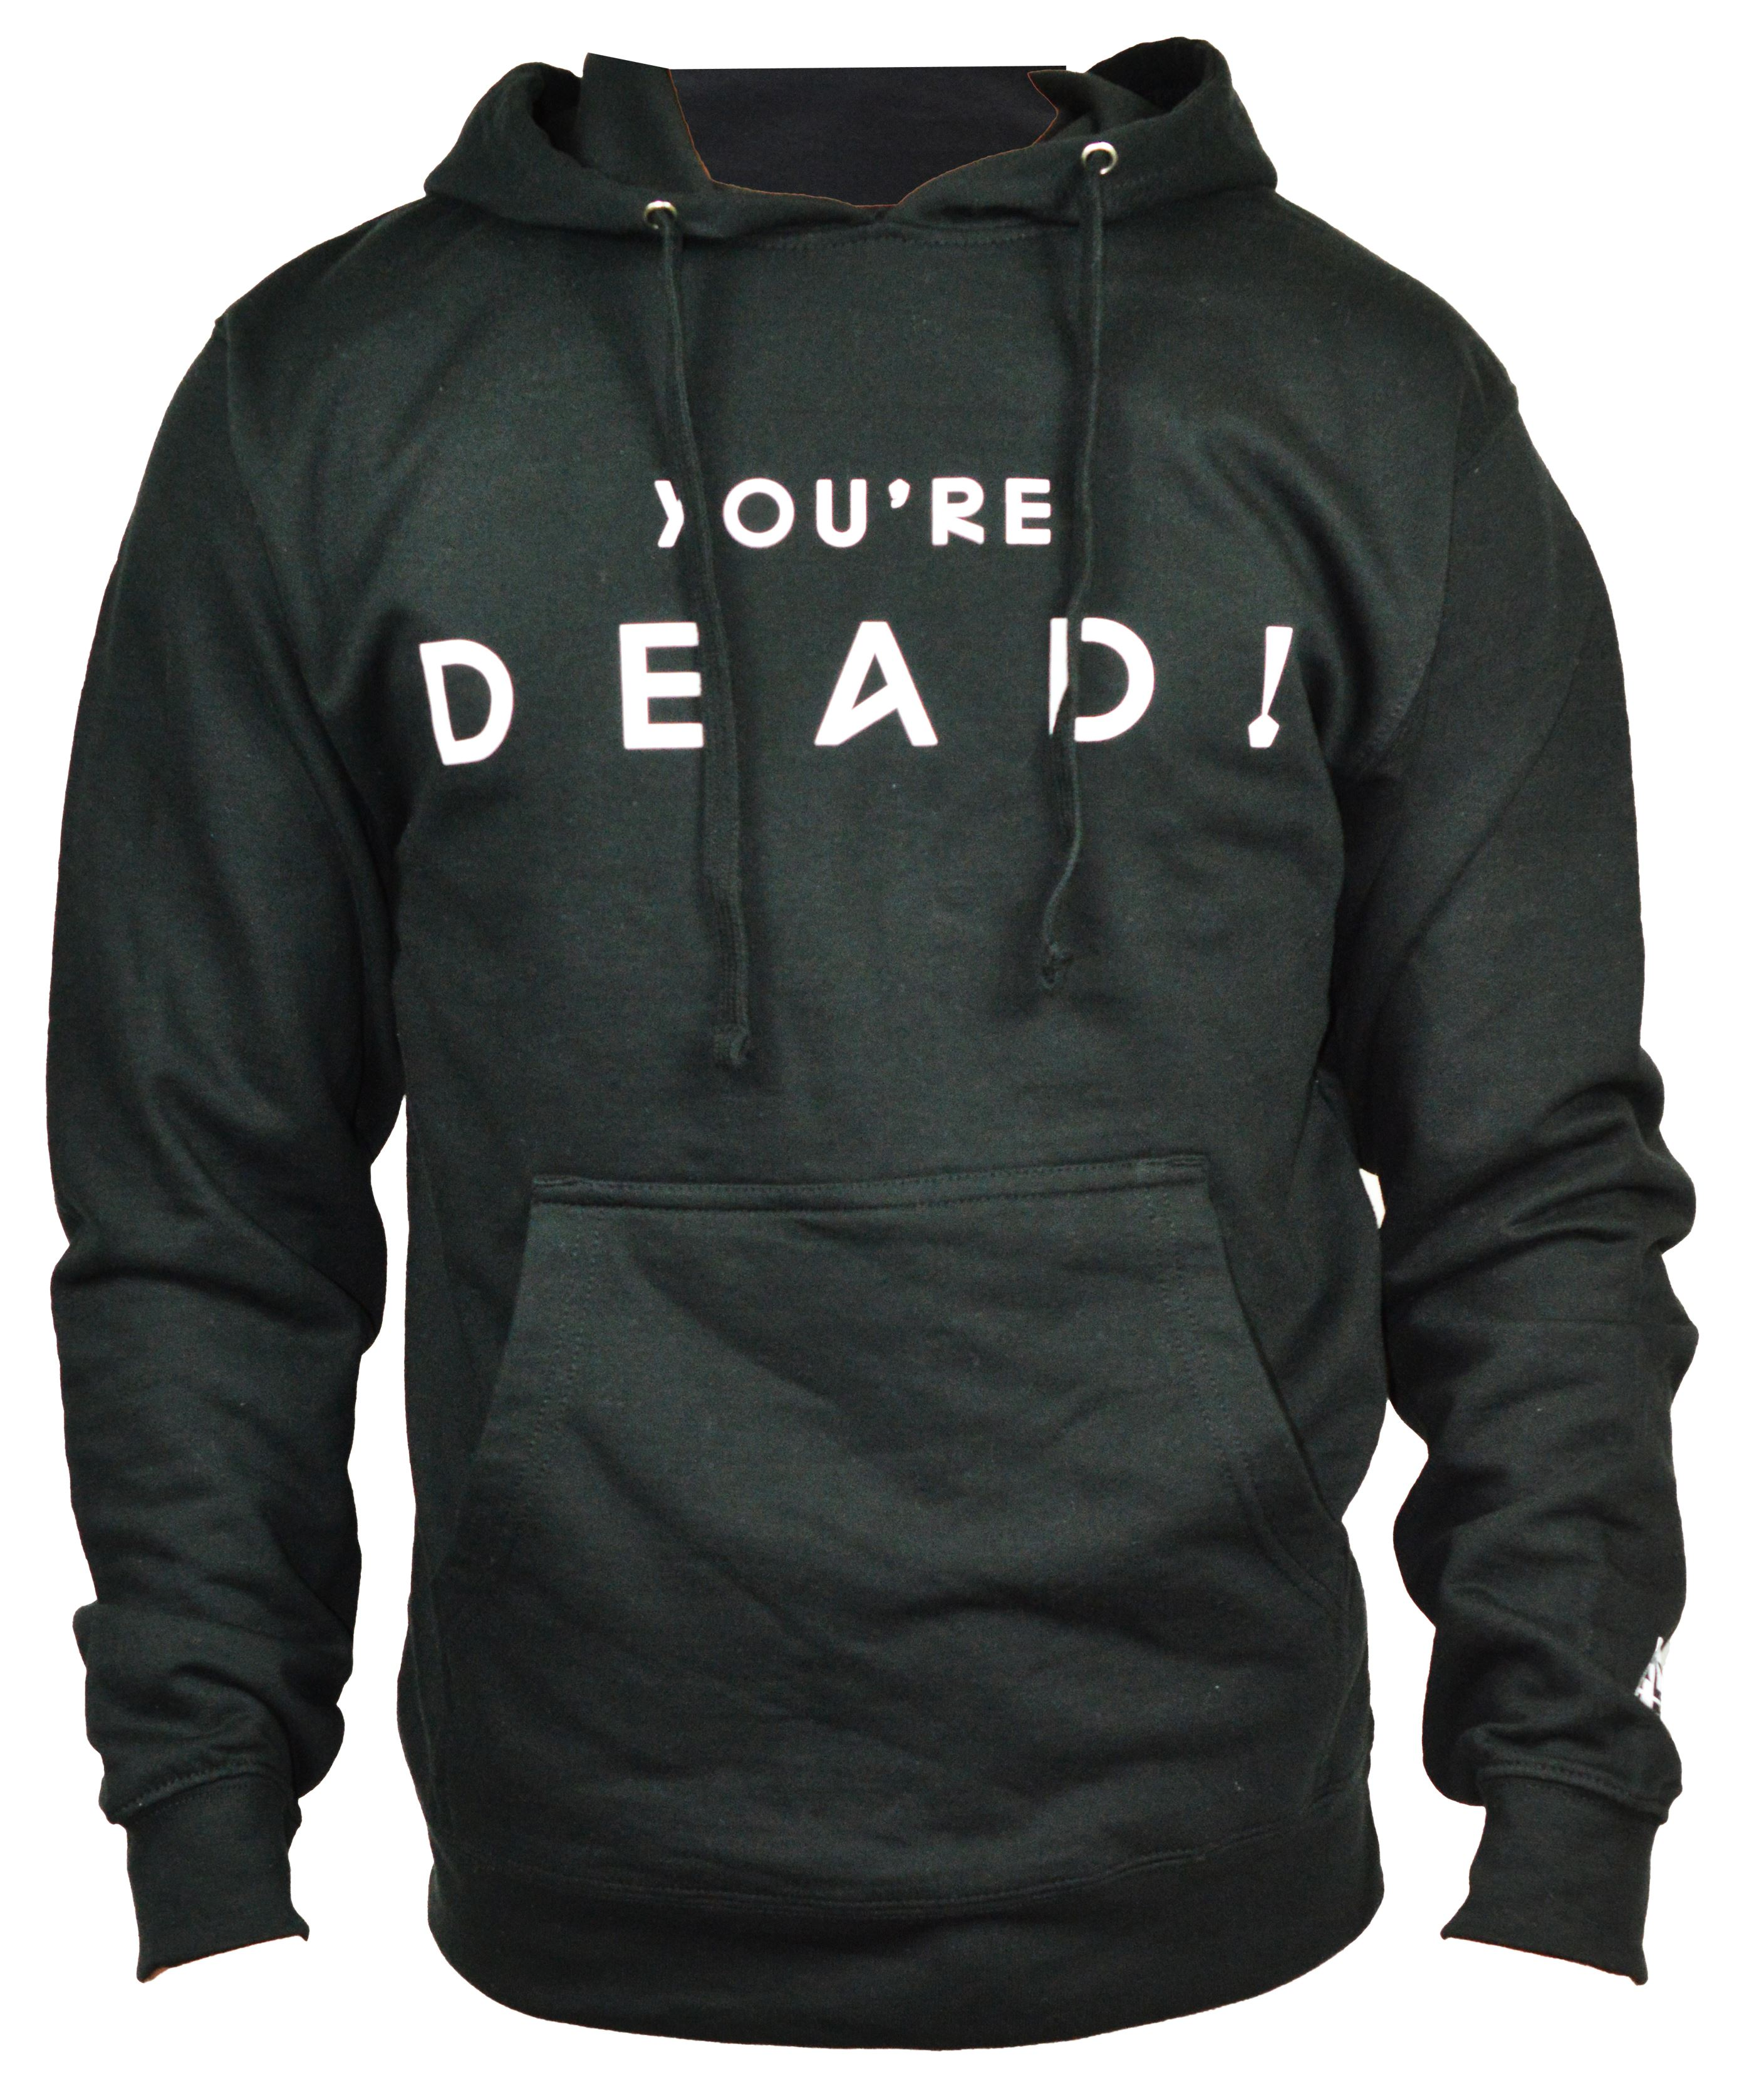 OFFICIAL-FLYING-LOTUS-039-YOU-039-RE-DEAD-039-TOUR-MERCH-MEN-039-S-HOODIE-BLACK-039-XL-039-MSRP45